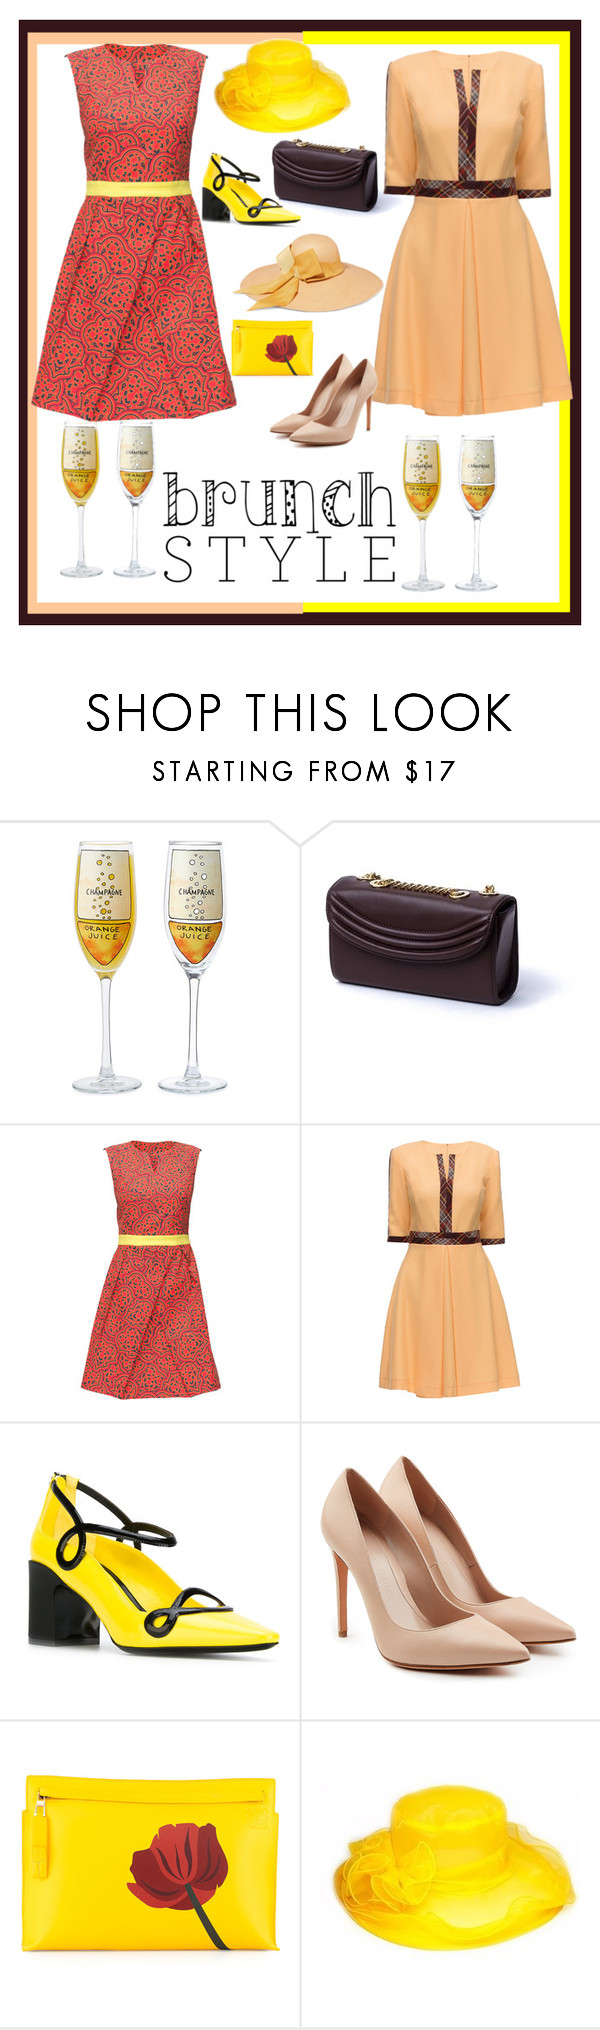 """Untitled #317"" by sabrepinkt ❤ liked on Polyvore featuring Lauren Cecchi, Lattori, Fabrizio Viti, Alexander McQueen, Loewe and Sensi Studio"